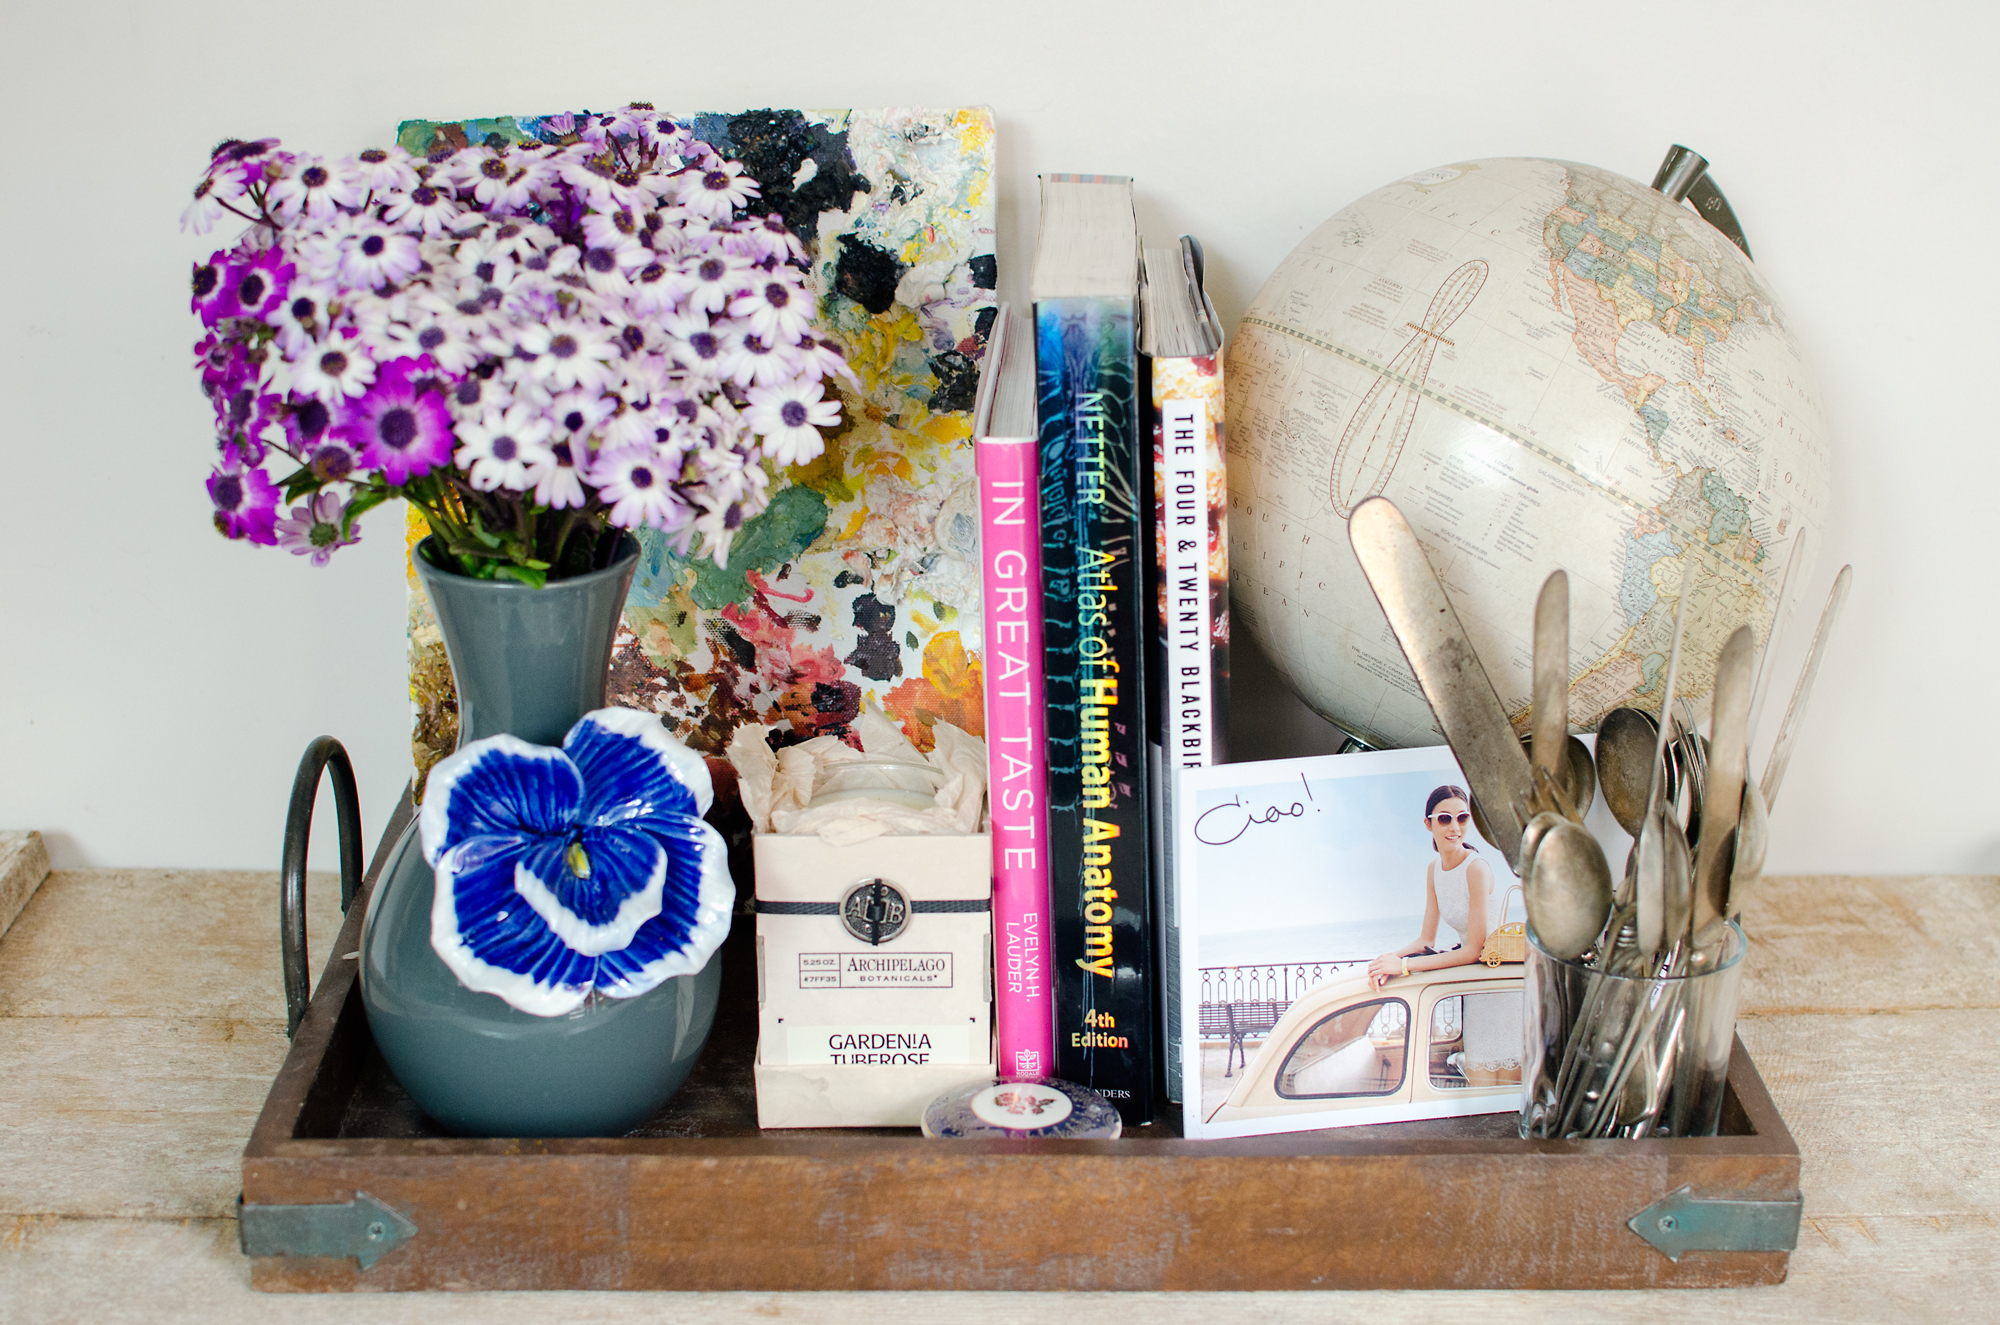 Lovely decorative tray arrangement filled with flea market finds and pretty trinkets.